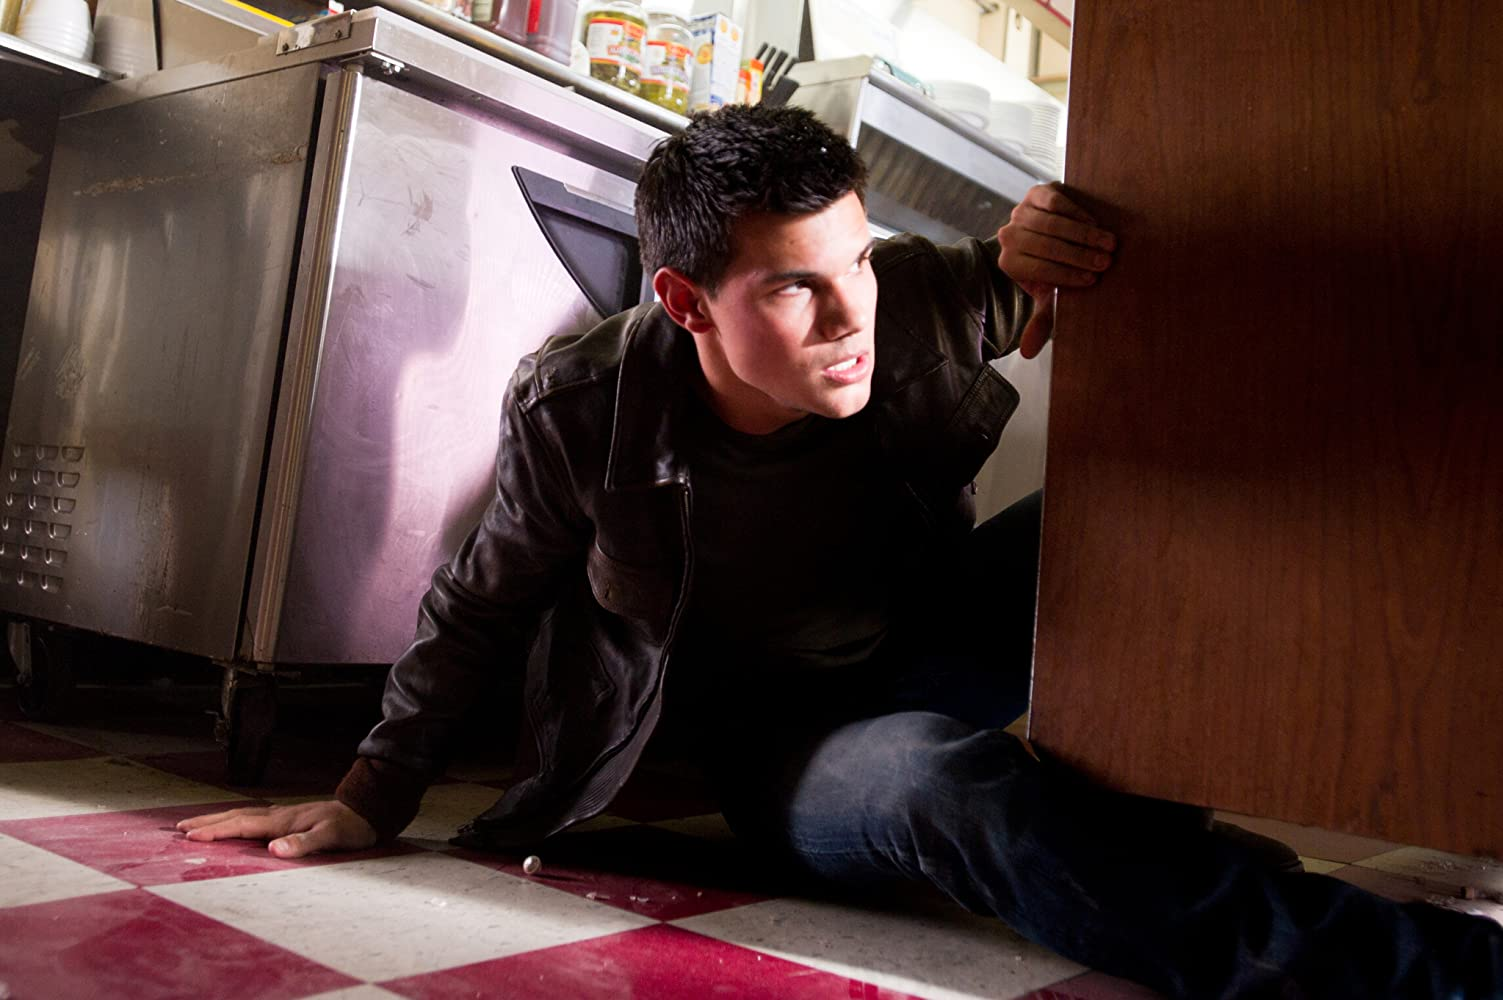 Taylor Lautner in Abduction (2011)